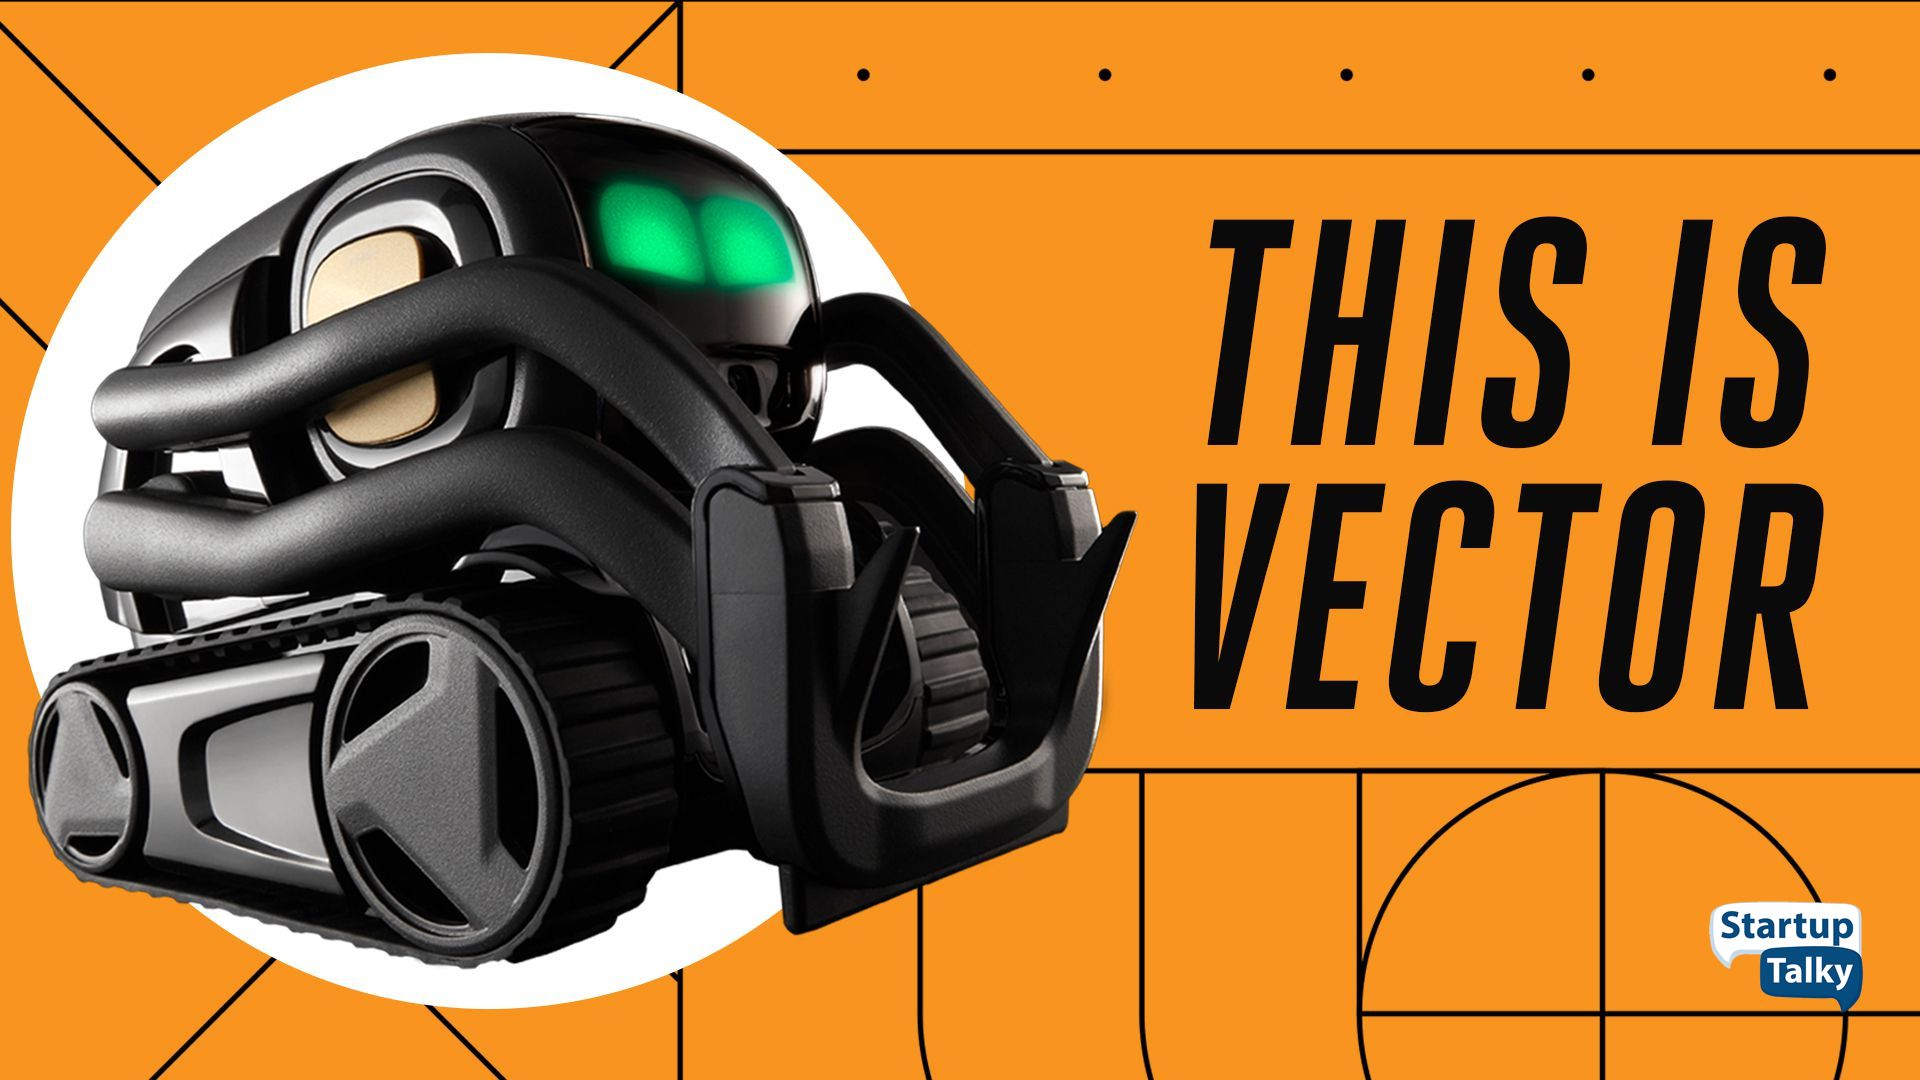 Anki's Vector Robot ready to be your digital companion.